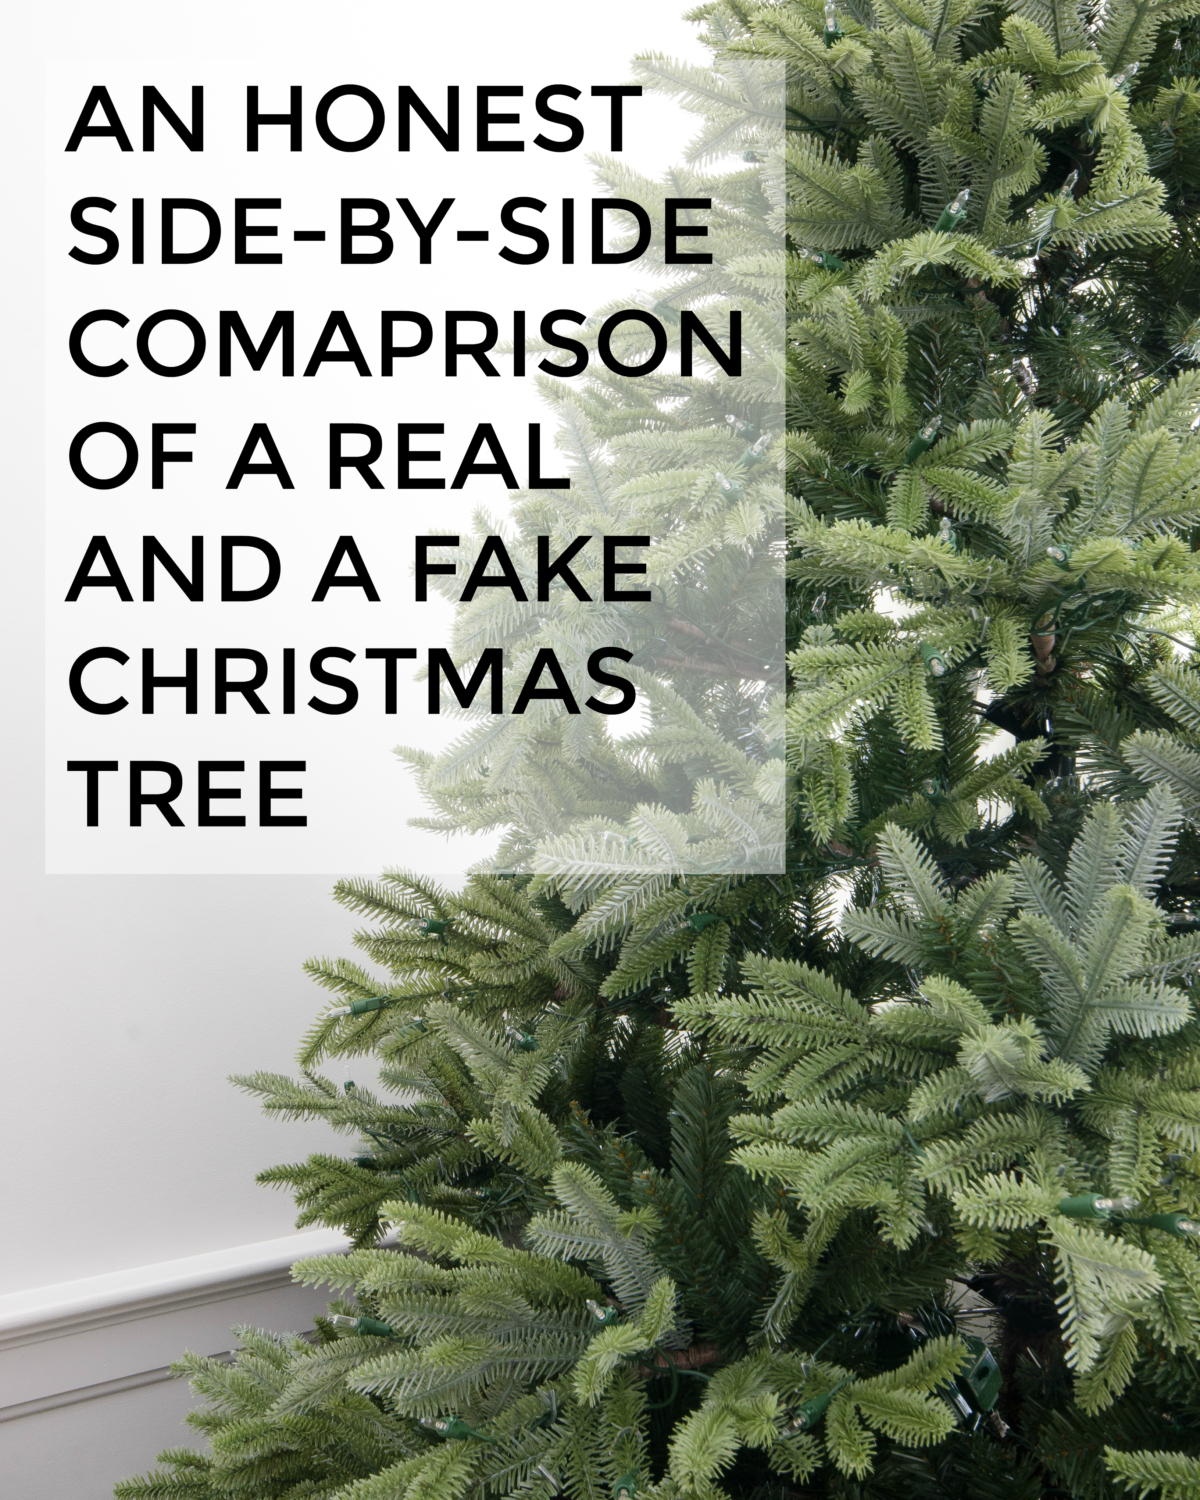 An honest side-by-side comparison of a real tree vs. a fake tree